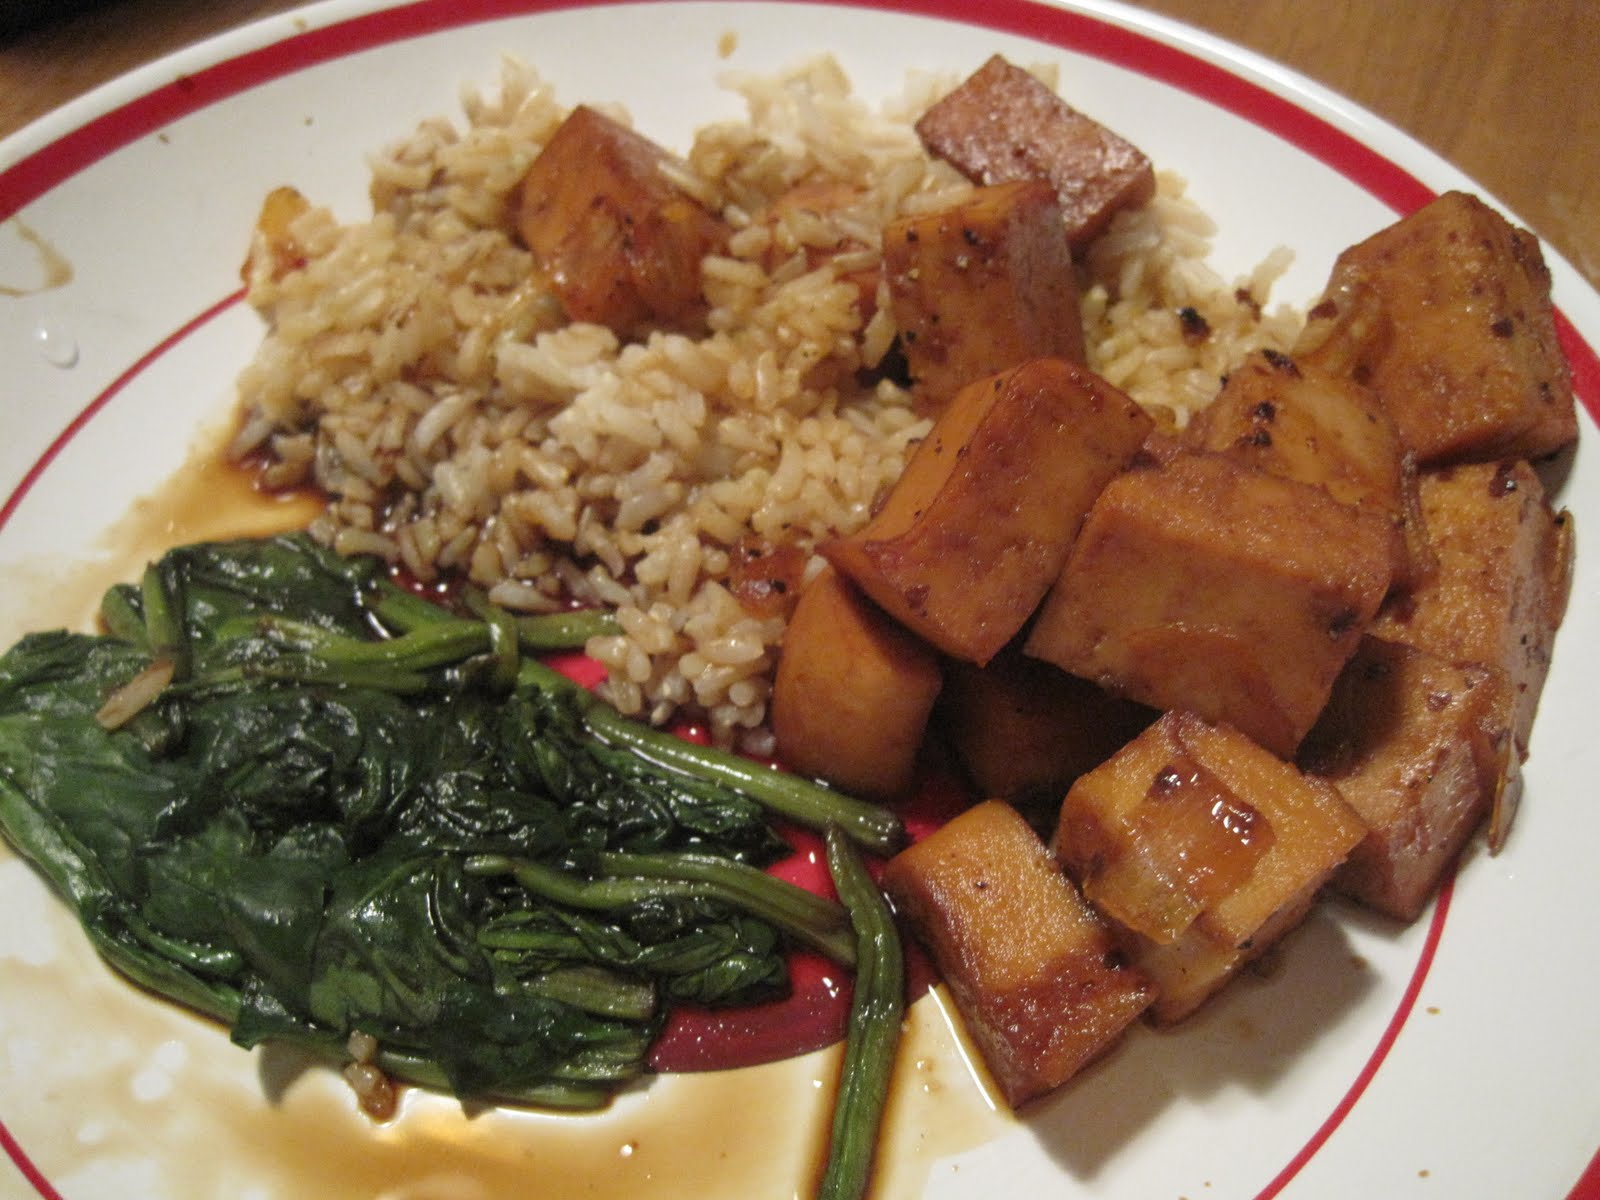 Evelyn's food blog: Braised tofu in caramel sauce